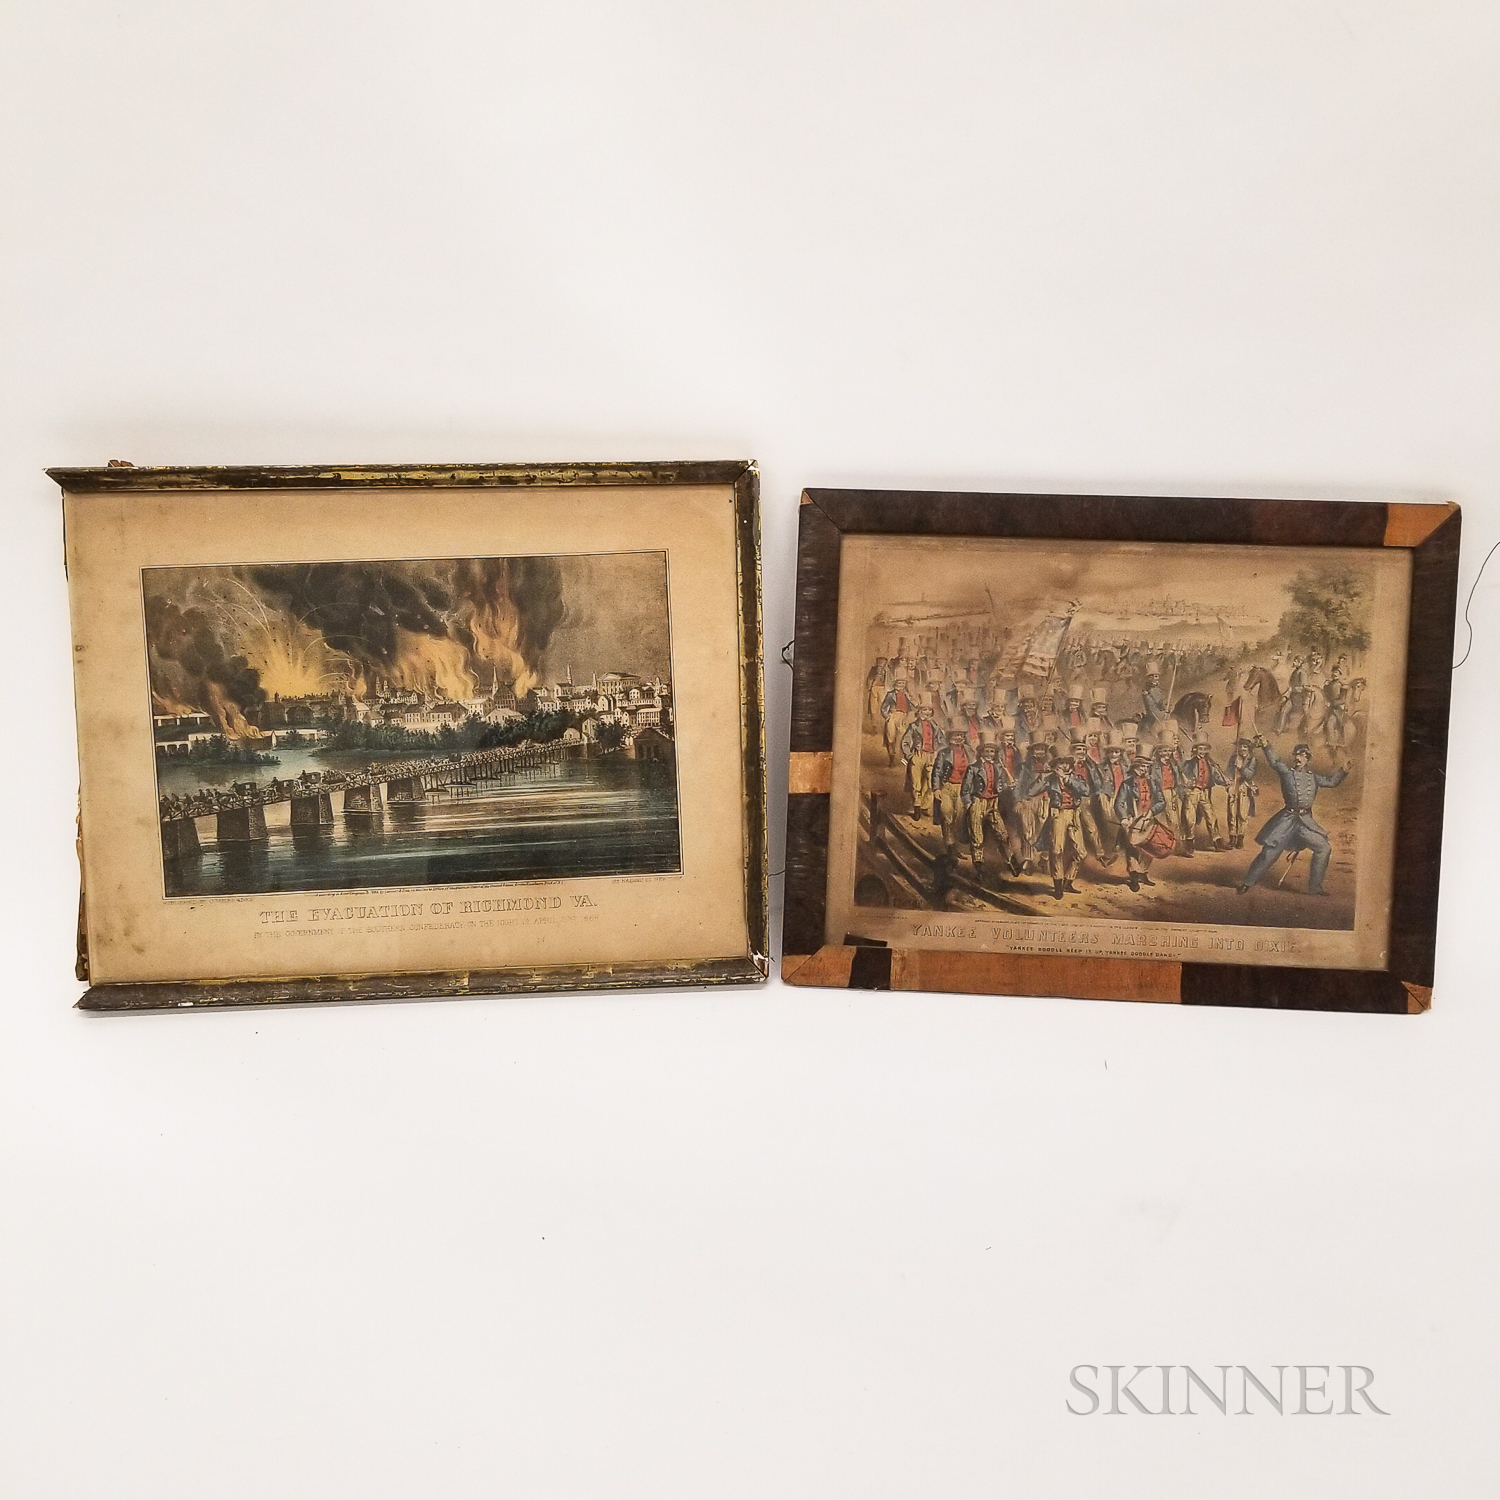 Two Hand-colored Lithographs of Civil War Scenes